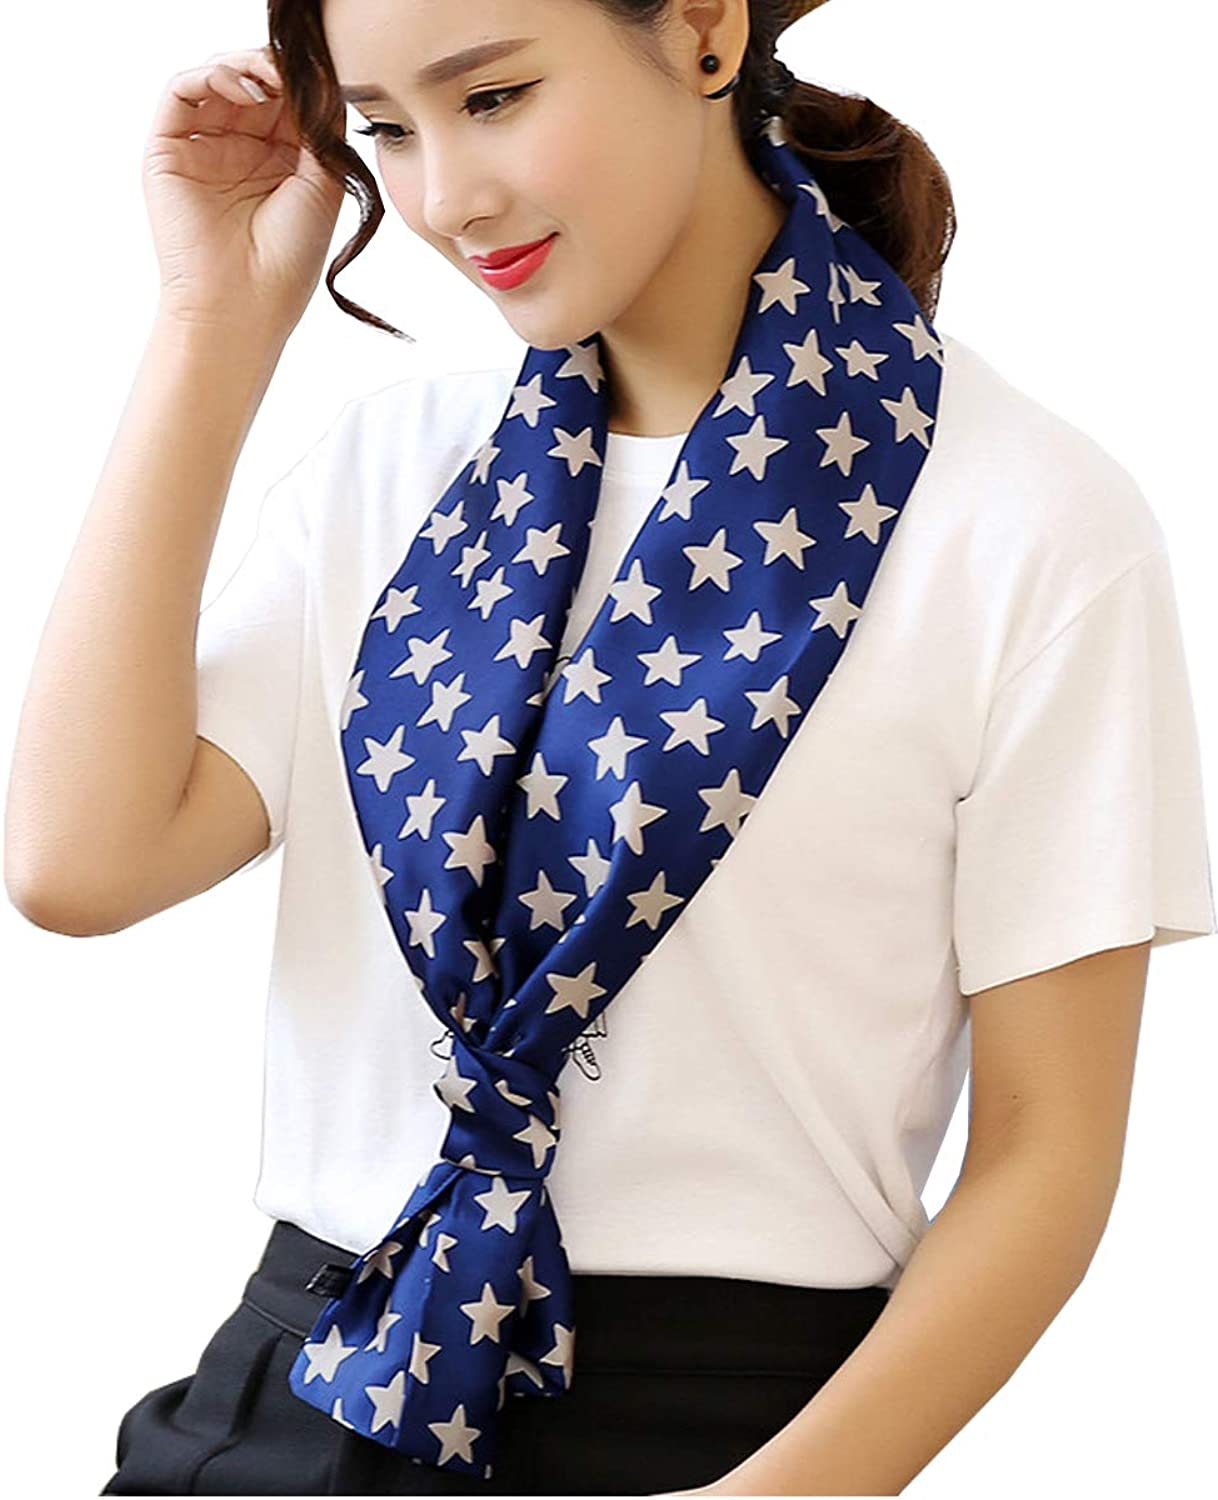 Blingfit Womens Fashion satin Silk Scarves Double layer